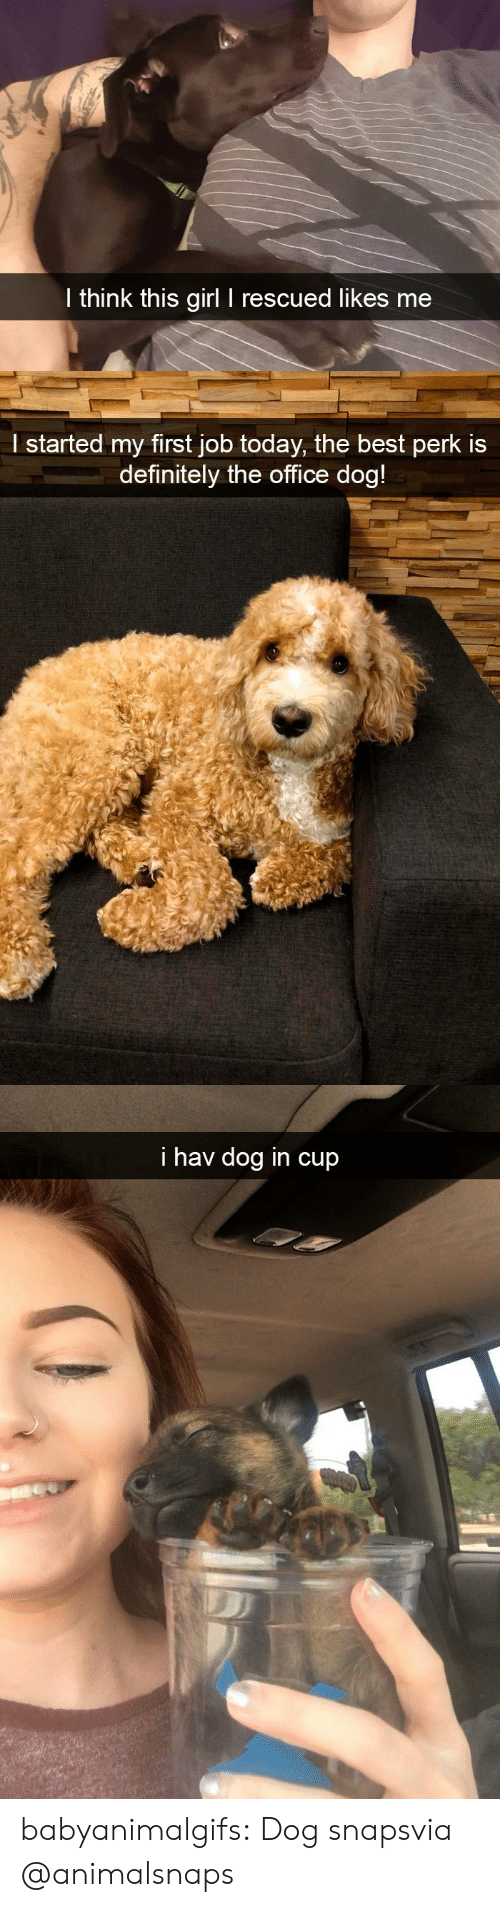 Definitely, The Office, and Tumblr: l think this girl I rescued likes me   l started my first job today, the best perk is  definitely the office doa   i hav dog in cup babyanimalgifs:  Dog snapsvia @animalsnaps